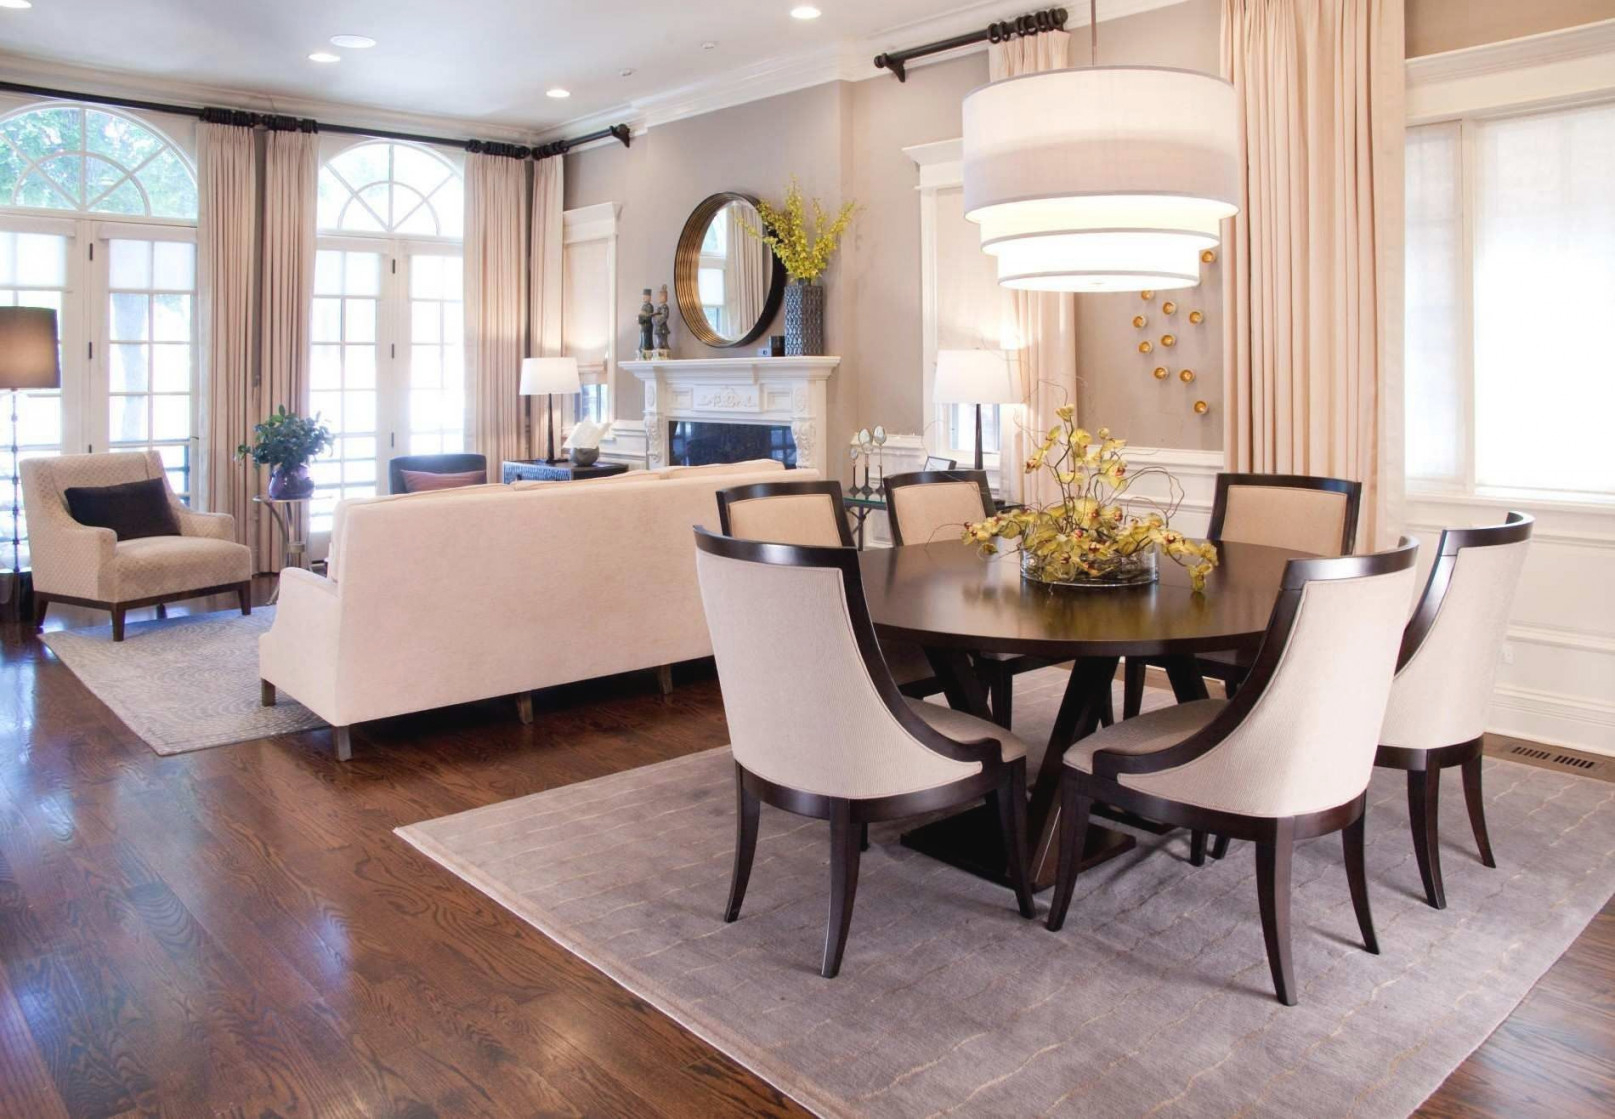 Vitual Room Design Elegant Free Download Image Elegant for 15 Ideas Gallery For Living Room Dining Room Combination